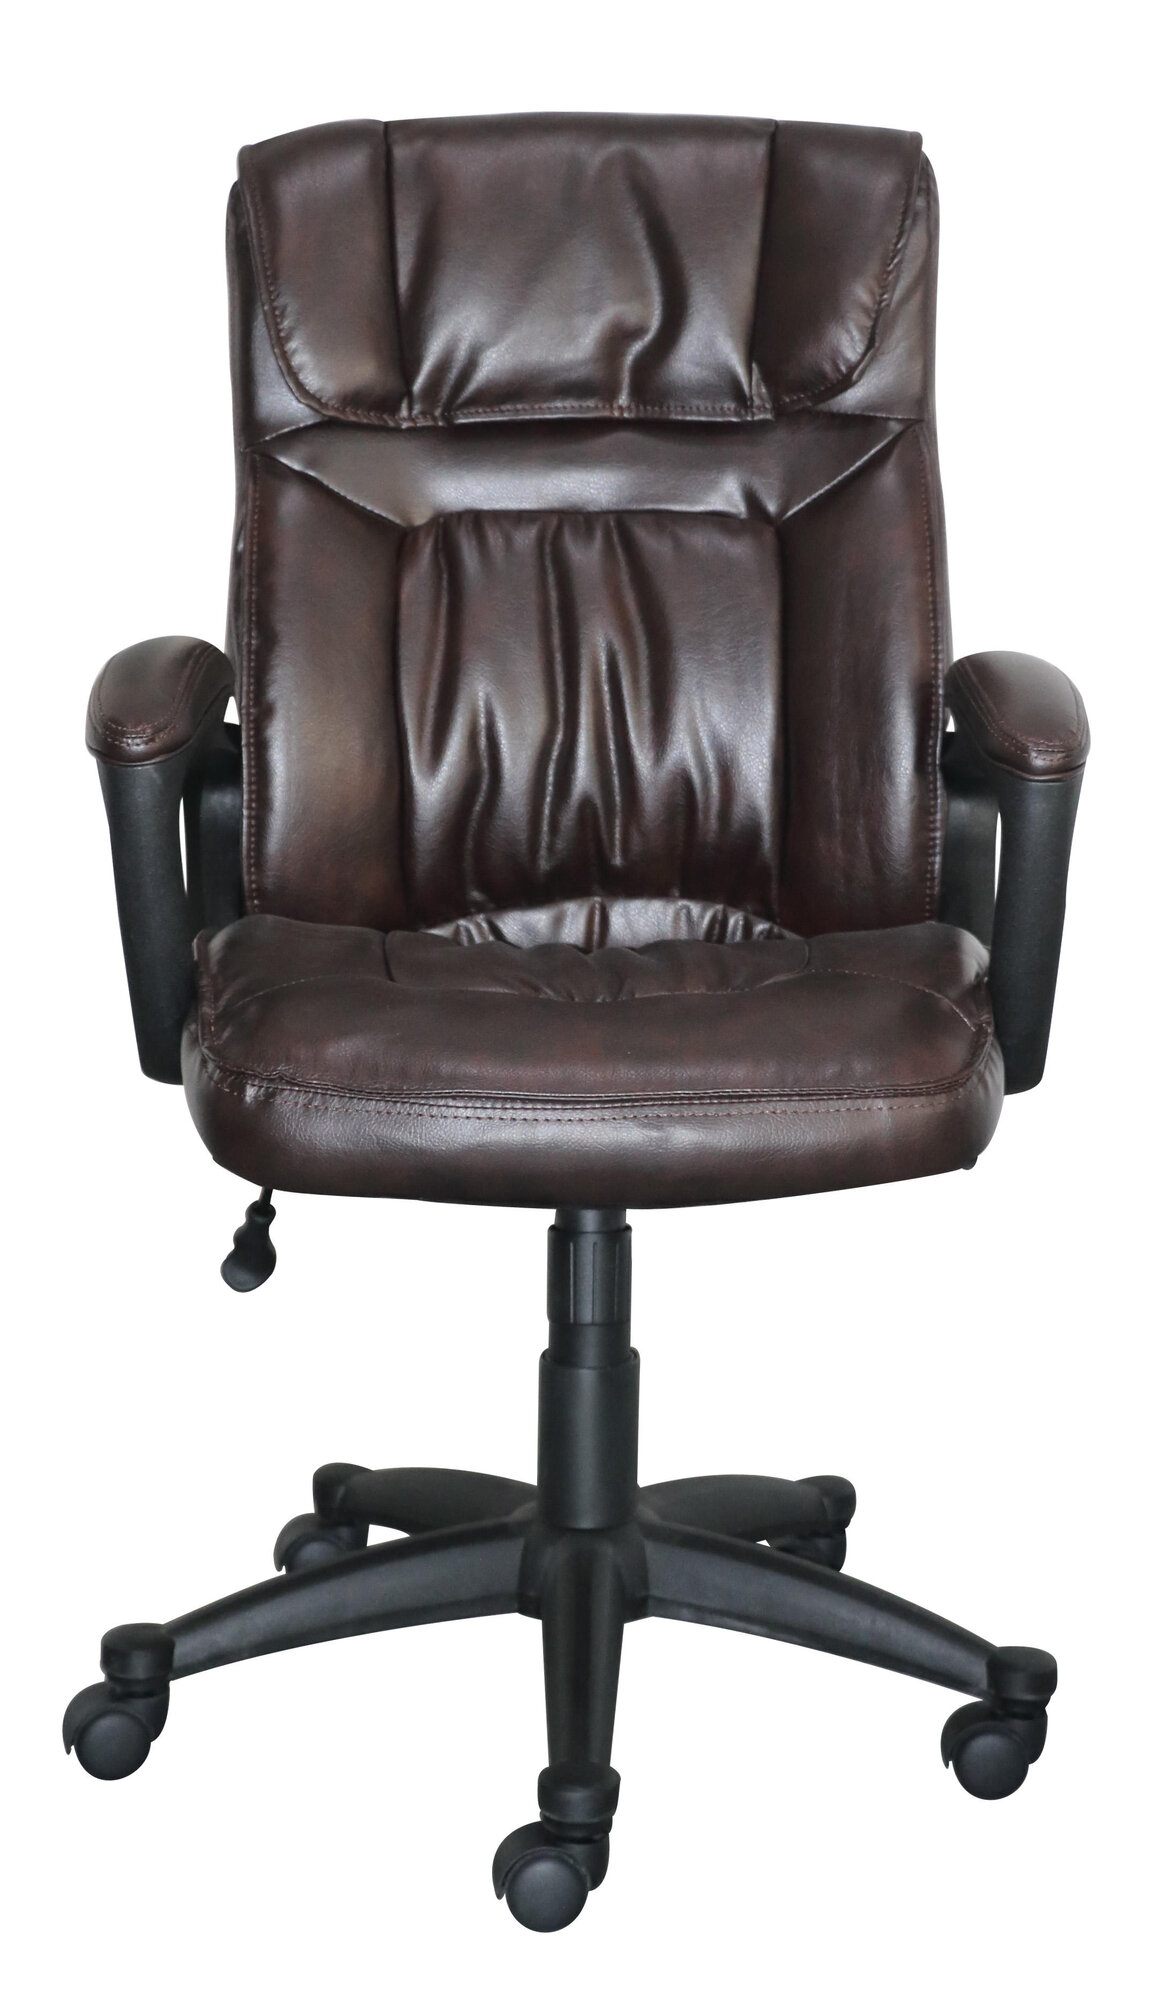 Serta Chr200120 Style Hannah Comfort Leather Office Chair Biscuit About This Product Picture 1 Of 6 2